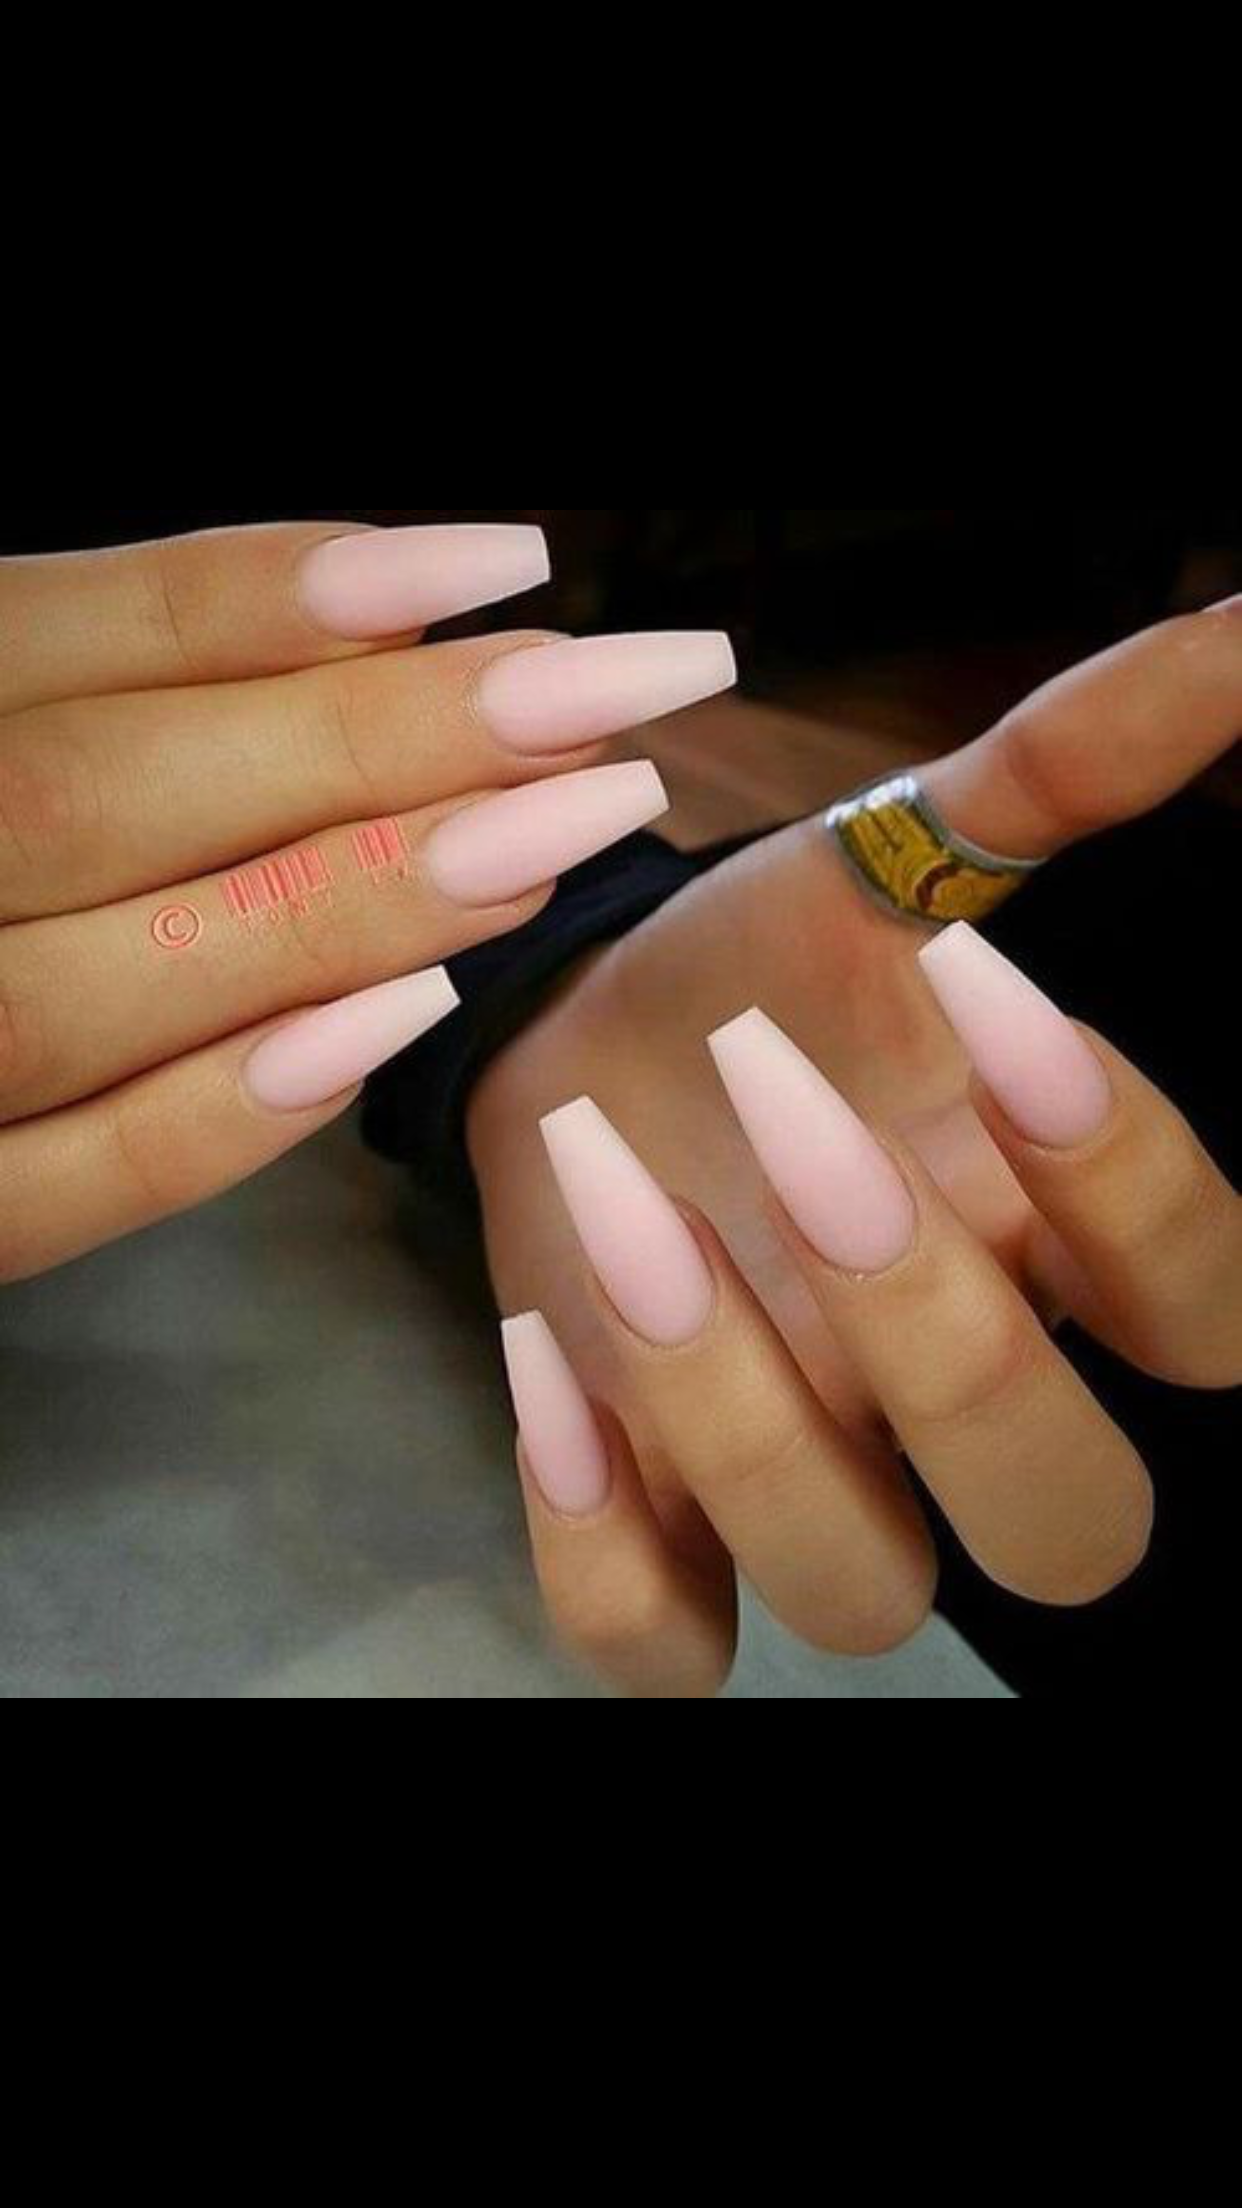 Pin by Osha Derington on Nails Nails Nails <3 | Pinterest | Nails ...